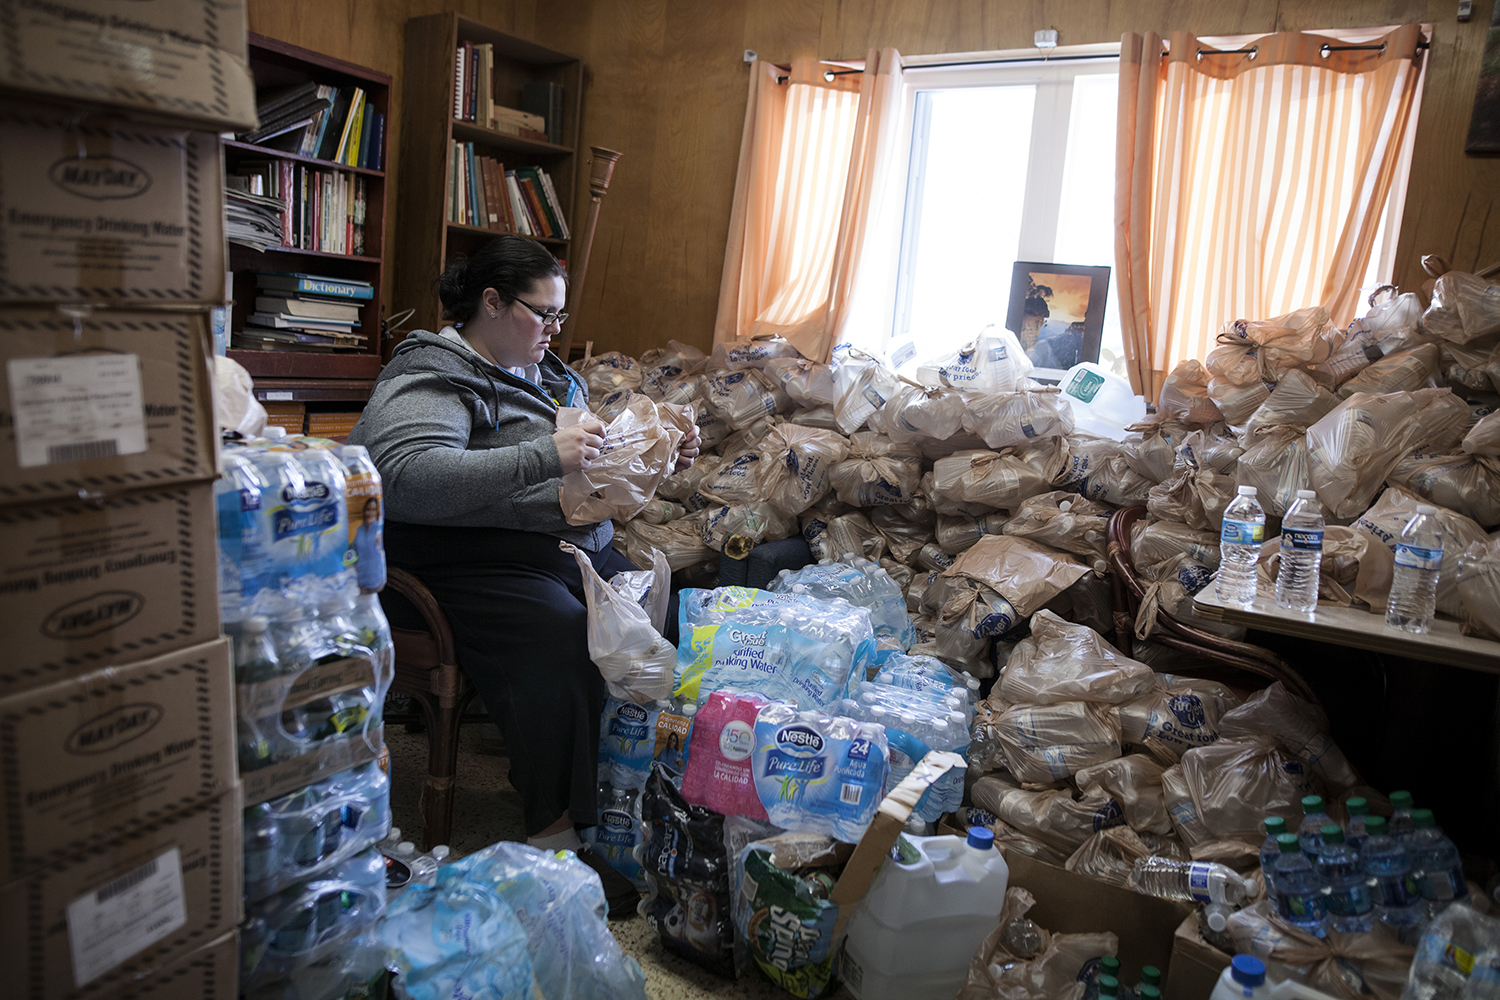 Genesee Twp. resident Samantha Baumgarner stretches a plastic grocery bag to fill with bottled water at the Mission of Hope - Universal Life Church on Wednesday, Jan. 20, 2016 in Flint, MI. Each bag is filled with six bottles of water, the allotted amount for each resident, per day, to be picked up at the mission. Tim Galloway for The Wall Street Journal